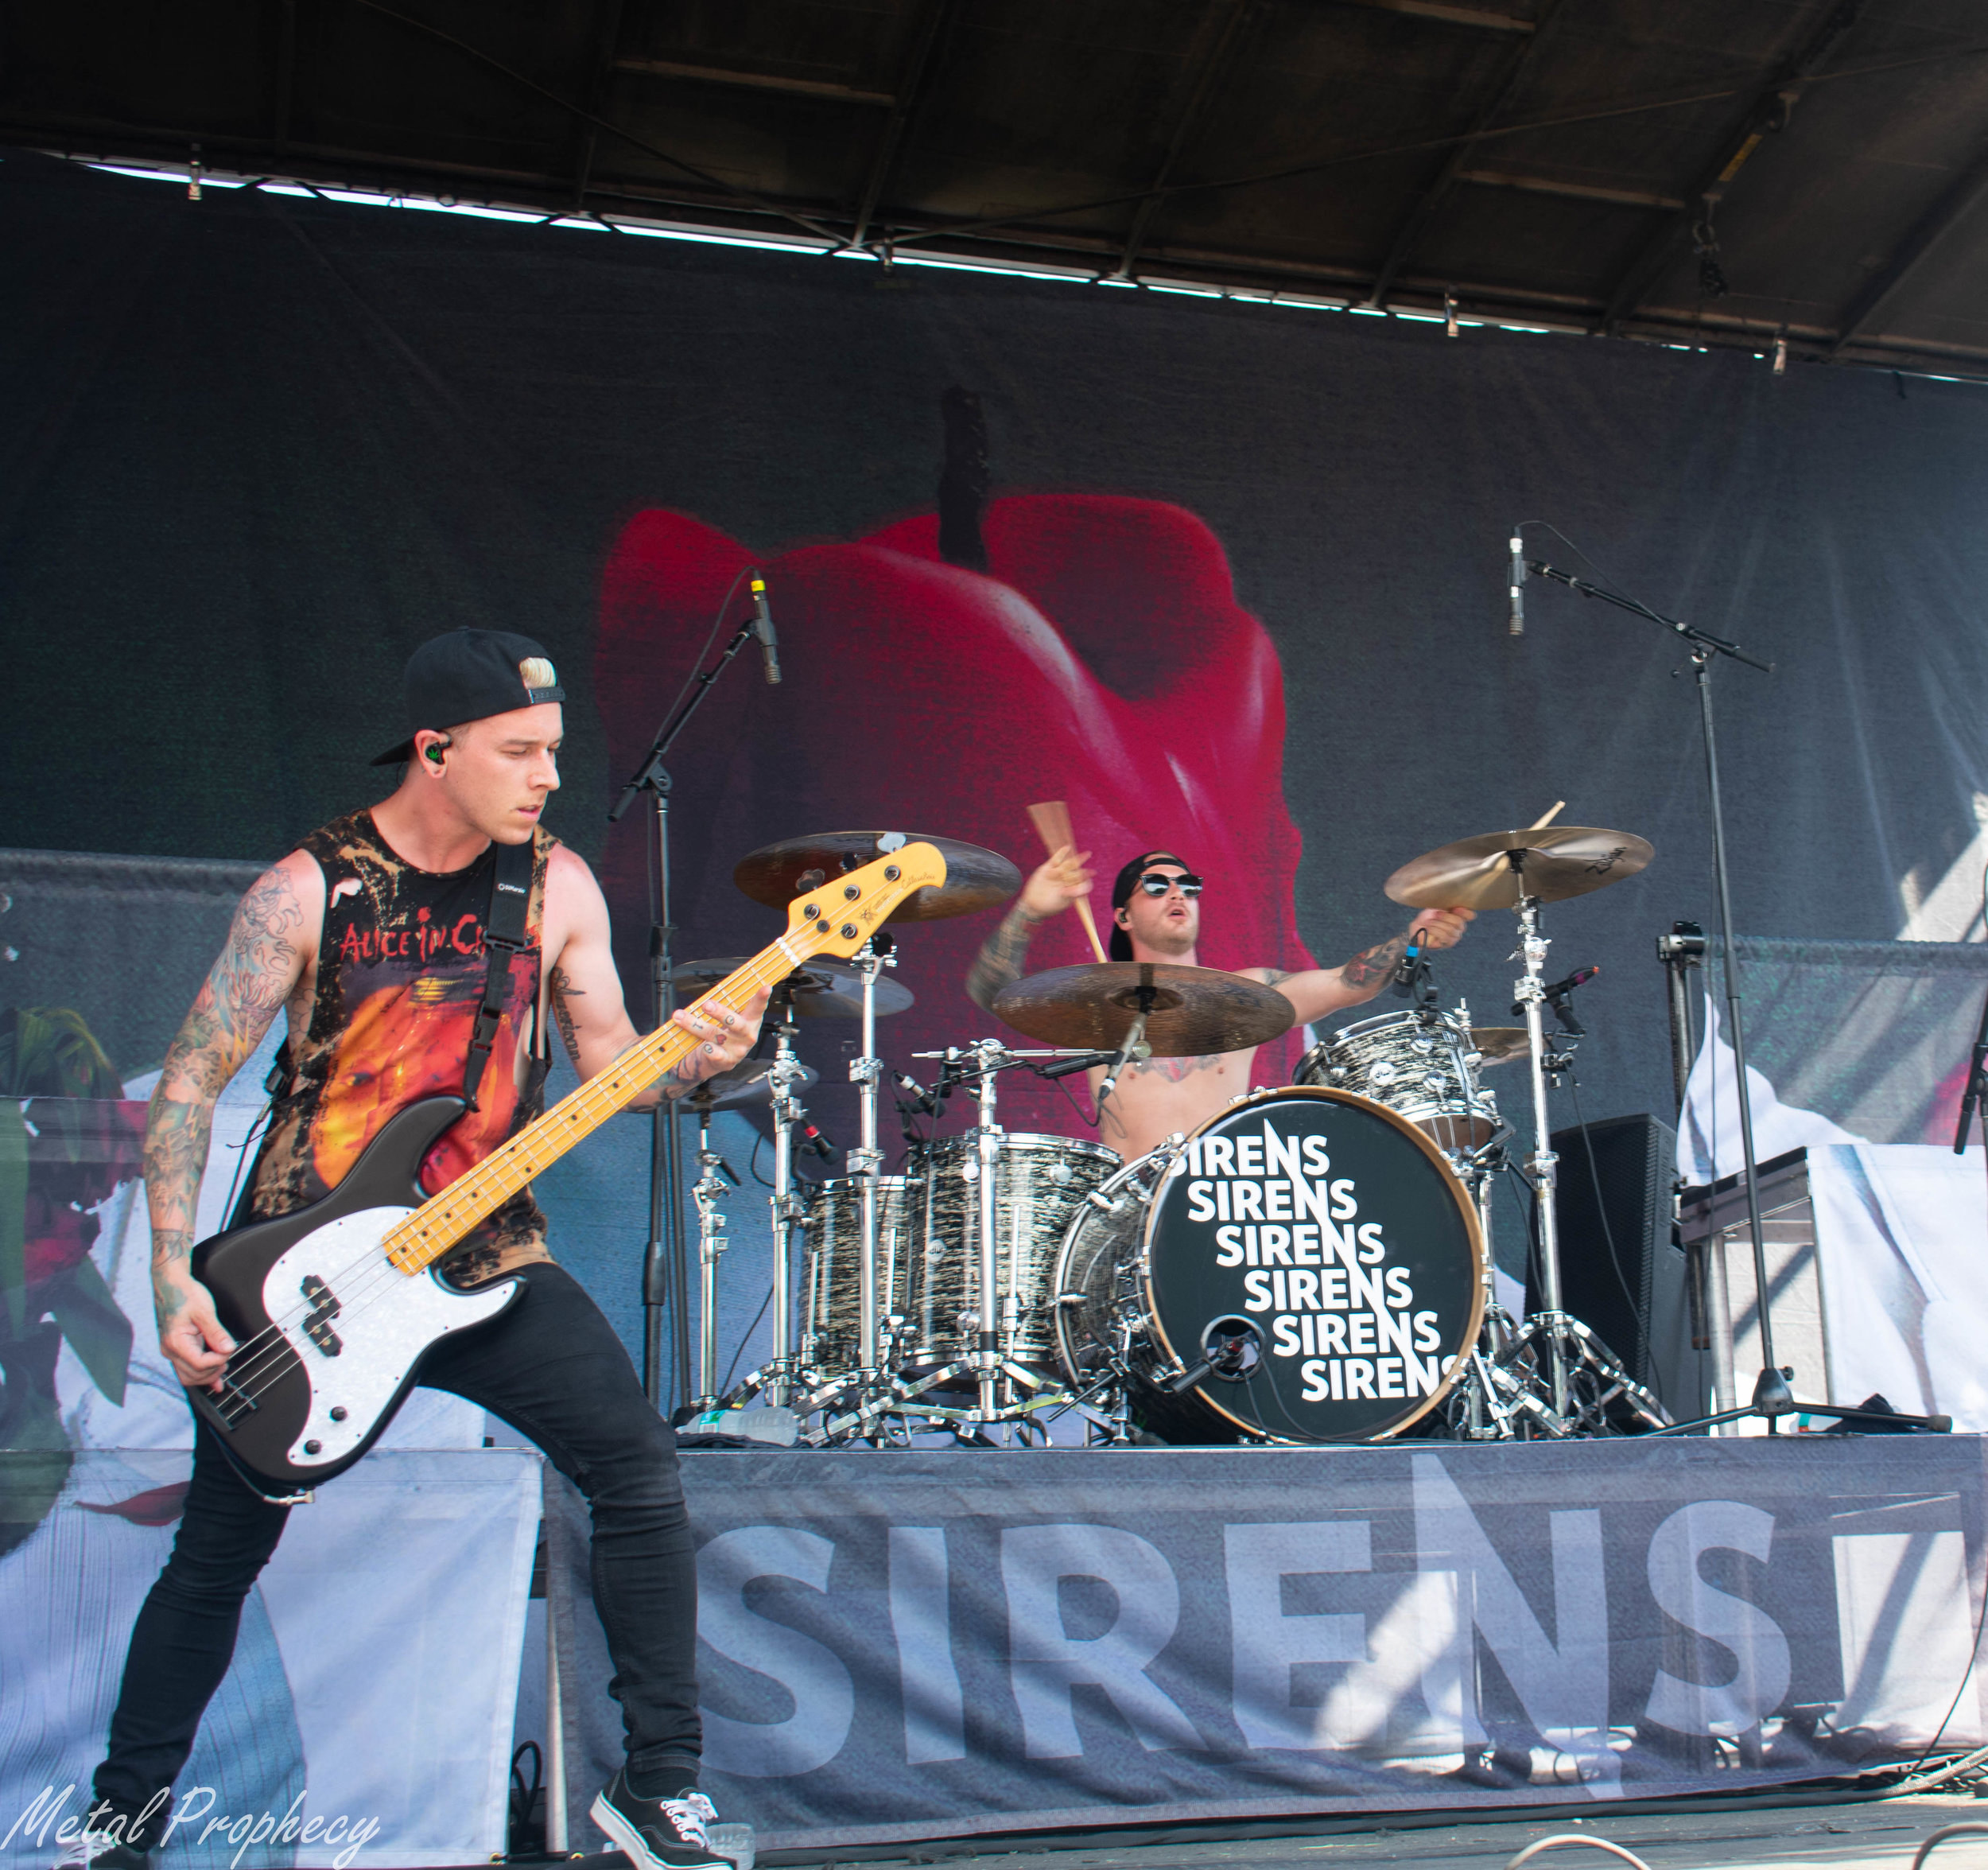 Sleeping With Sirens at Rockstar Energy Disrupt Festival